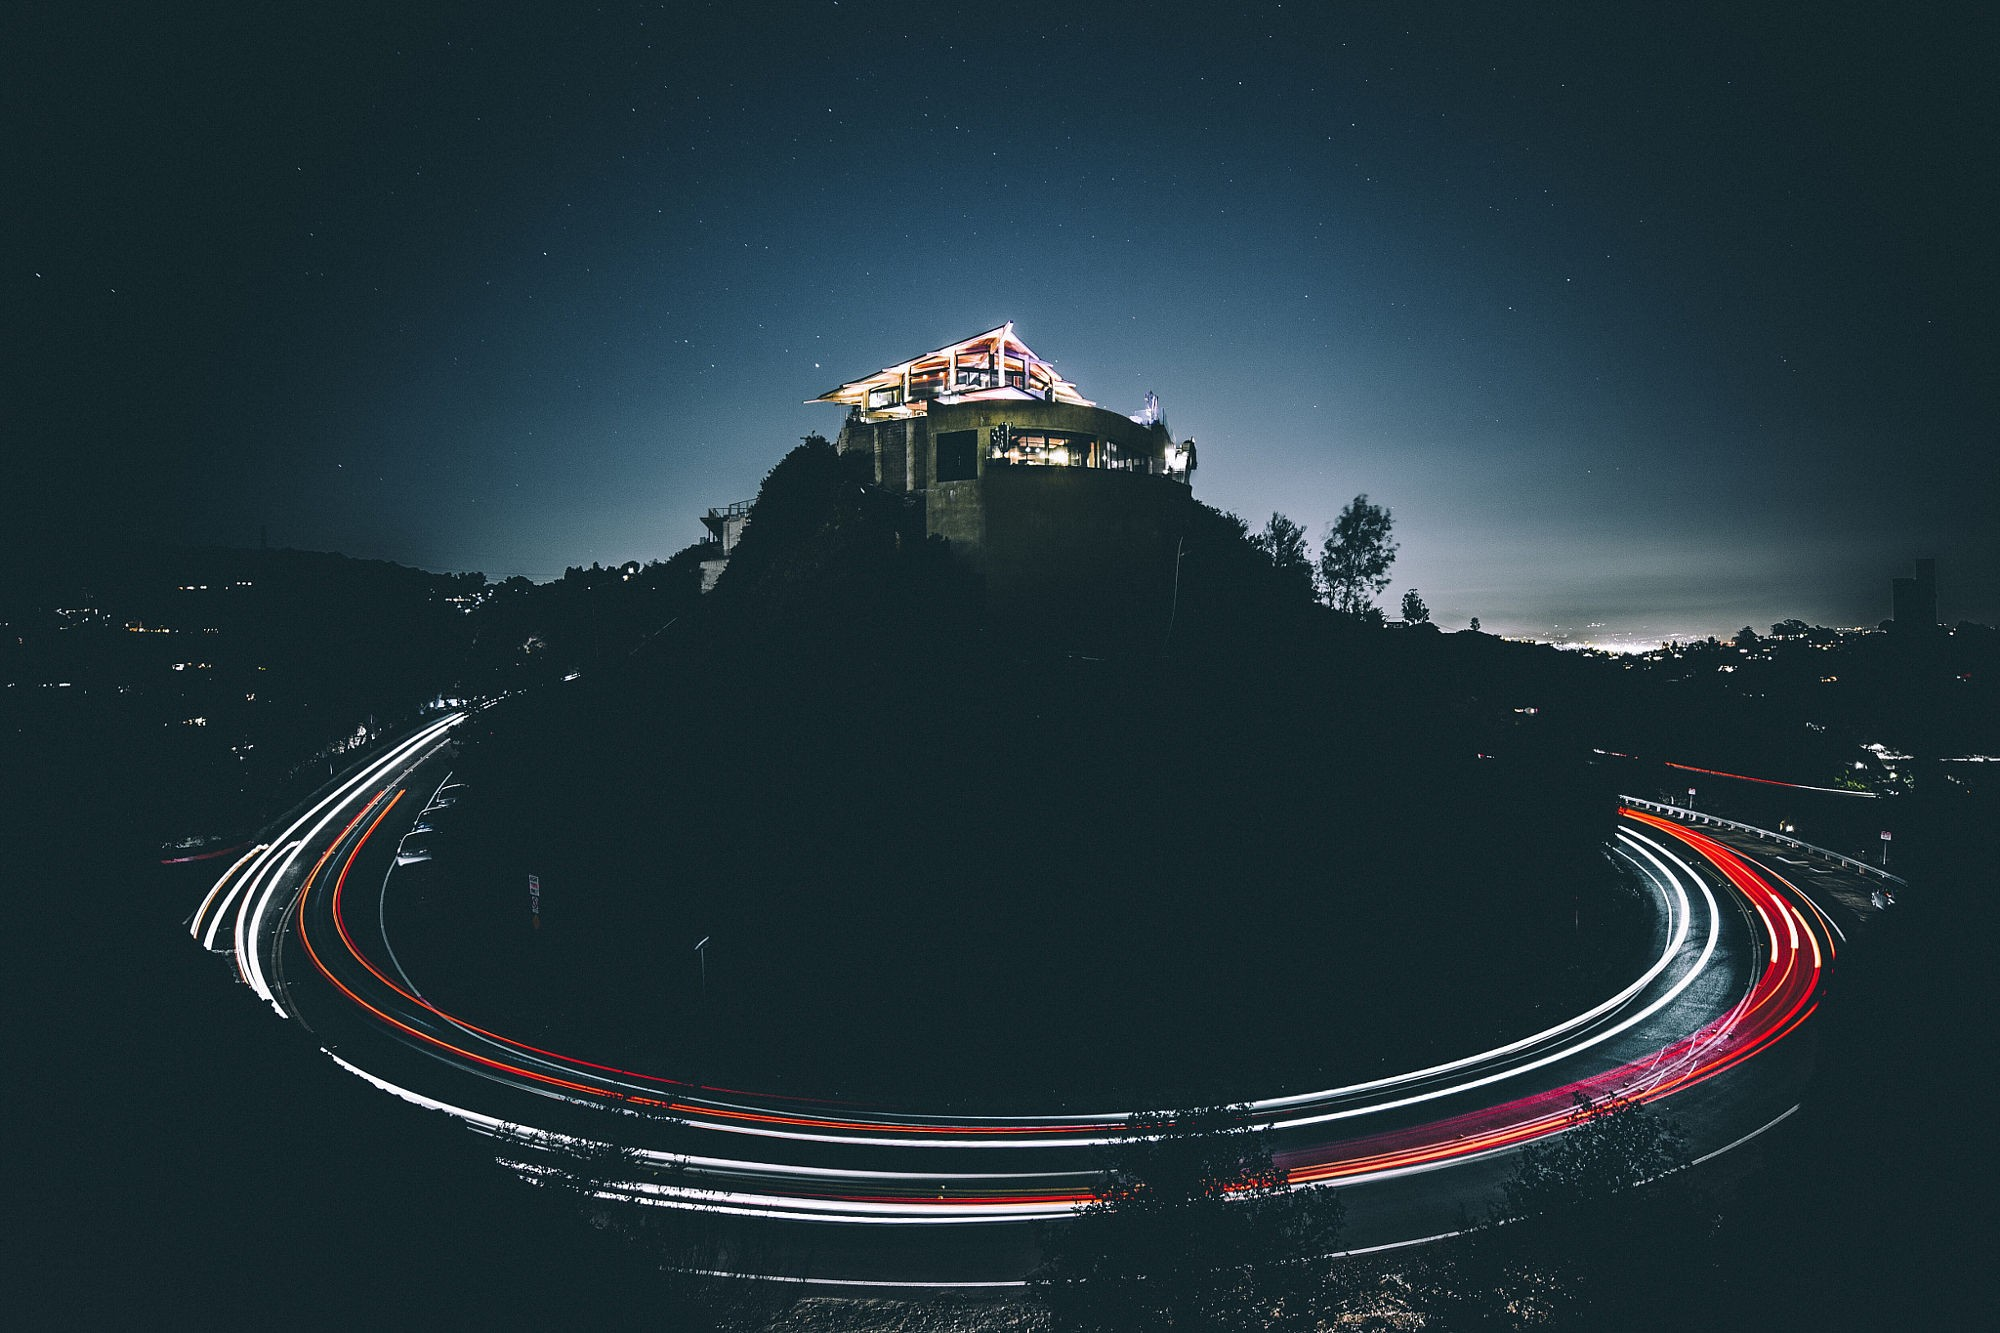 General 2000x1333 night stars house light trails Los Angeles long exposure 500px